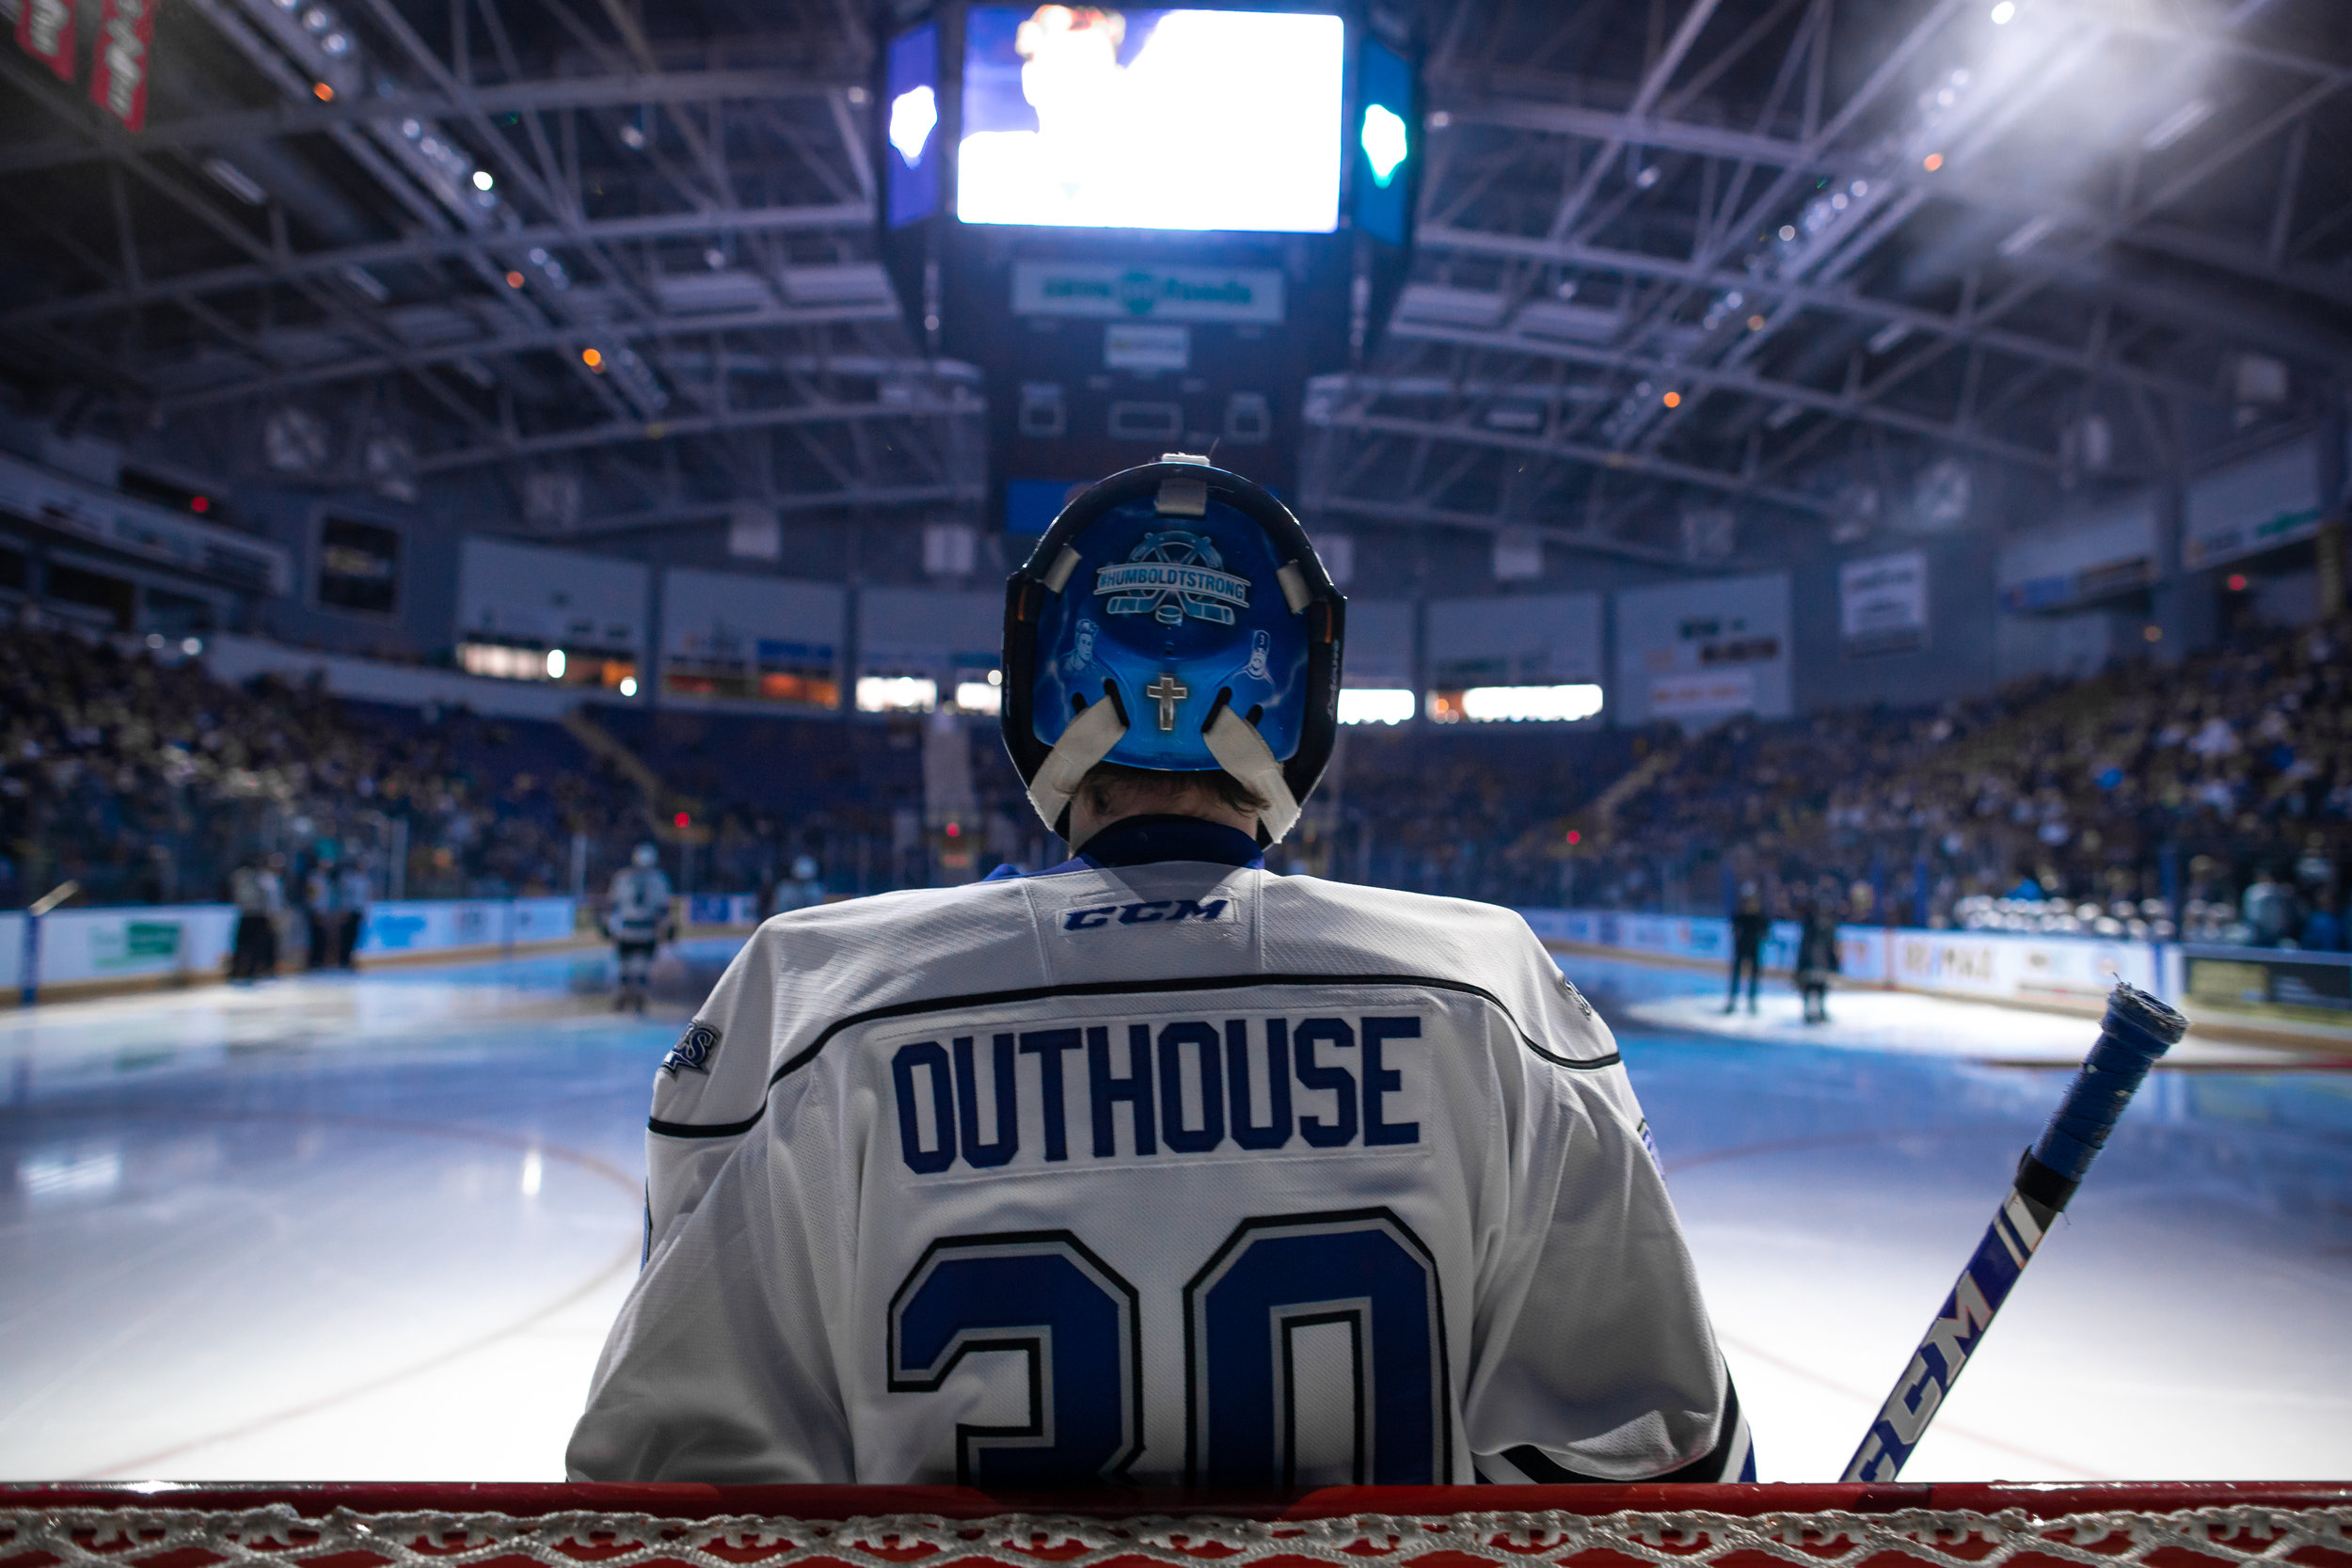 #30 Griffen Outhouse - Game 2 - WHL Playoffs 2019 Victoria Royals VS Kamloops Blazers - March 23 2019 (4-3 Loss). Photo by Jay Wallace-34549.jpg